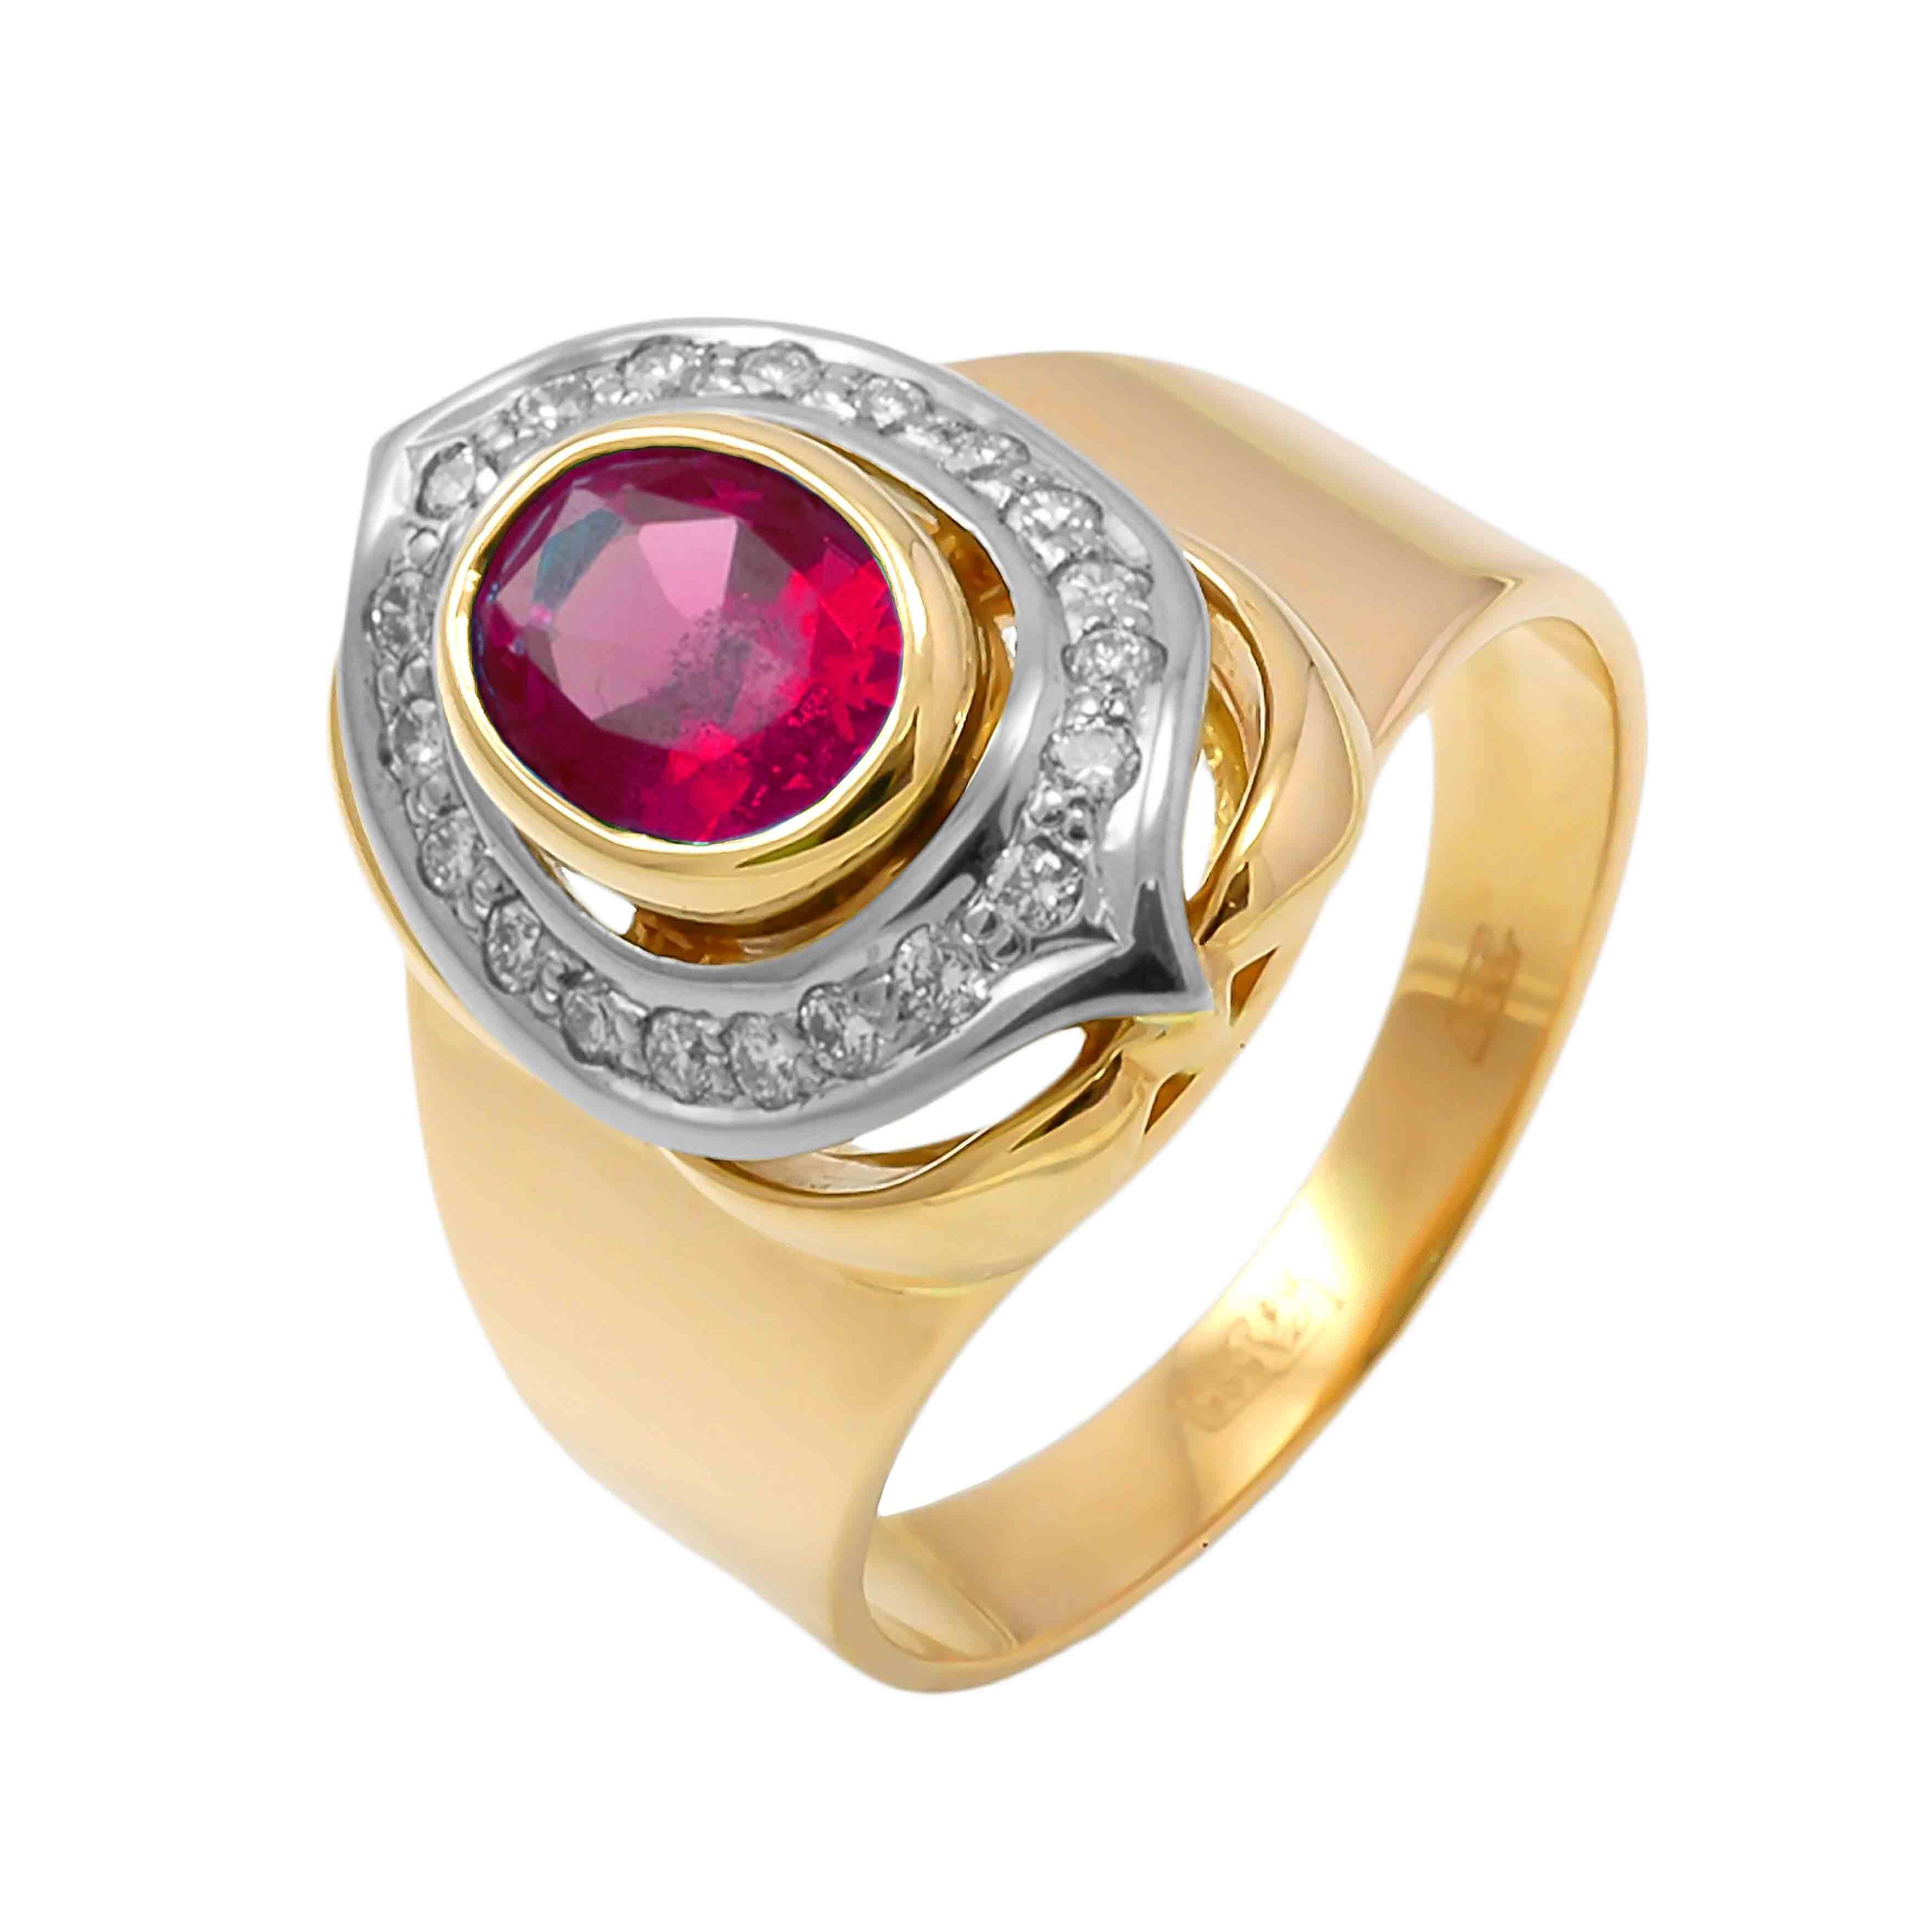 'Pigeon Blood' Ruby and Diamond 18K Gold Ring. view 2